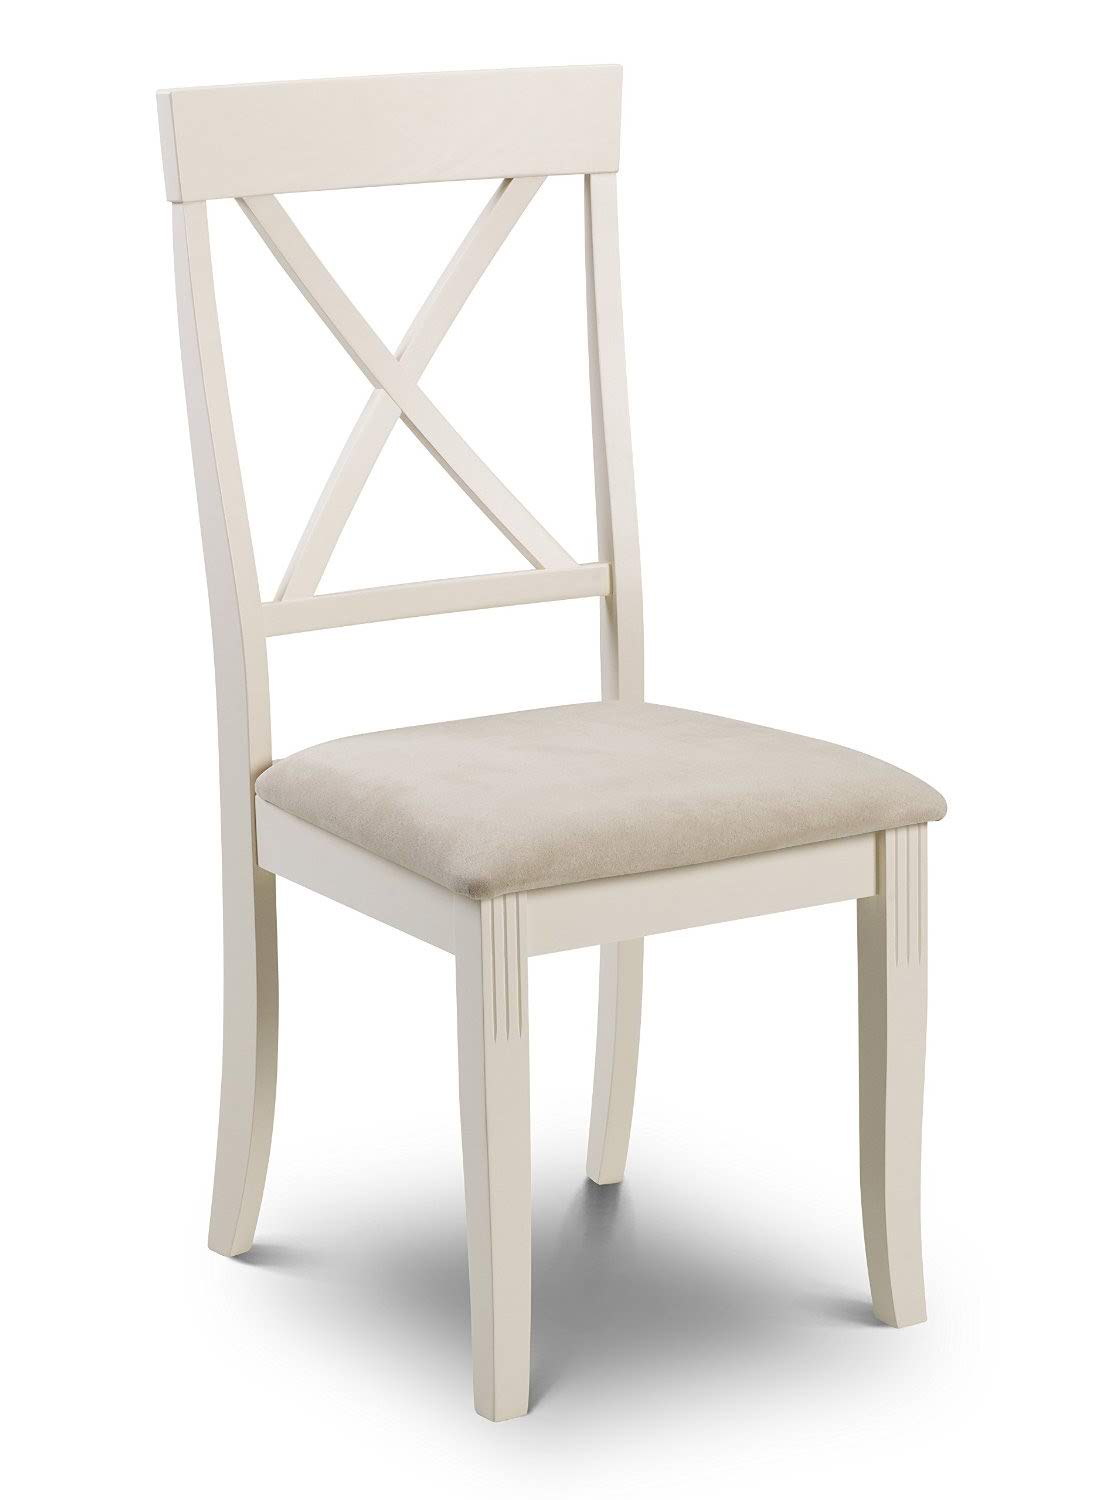 https://www.firstfurniture.co.uk/pub/media/catalog/product/3/1/310.jpeg